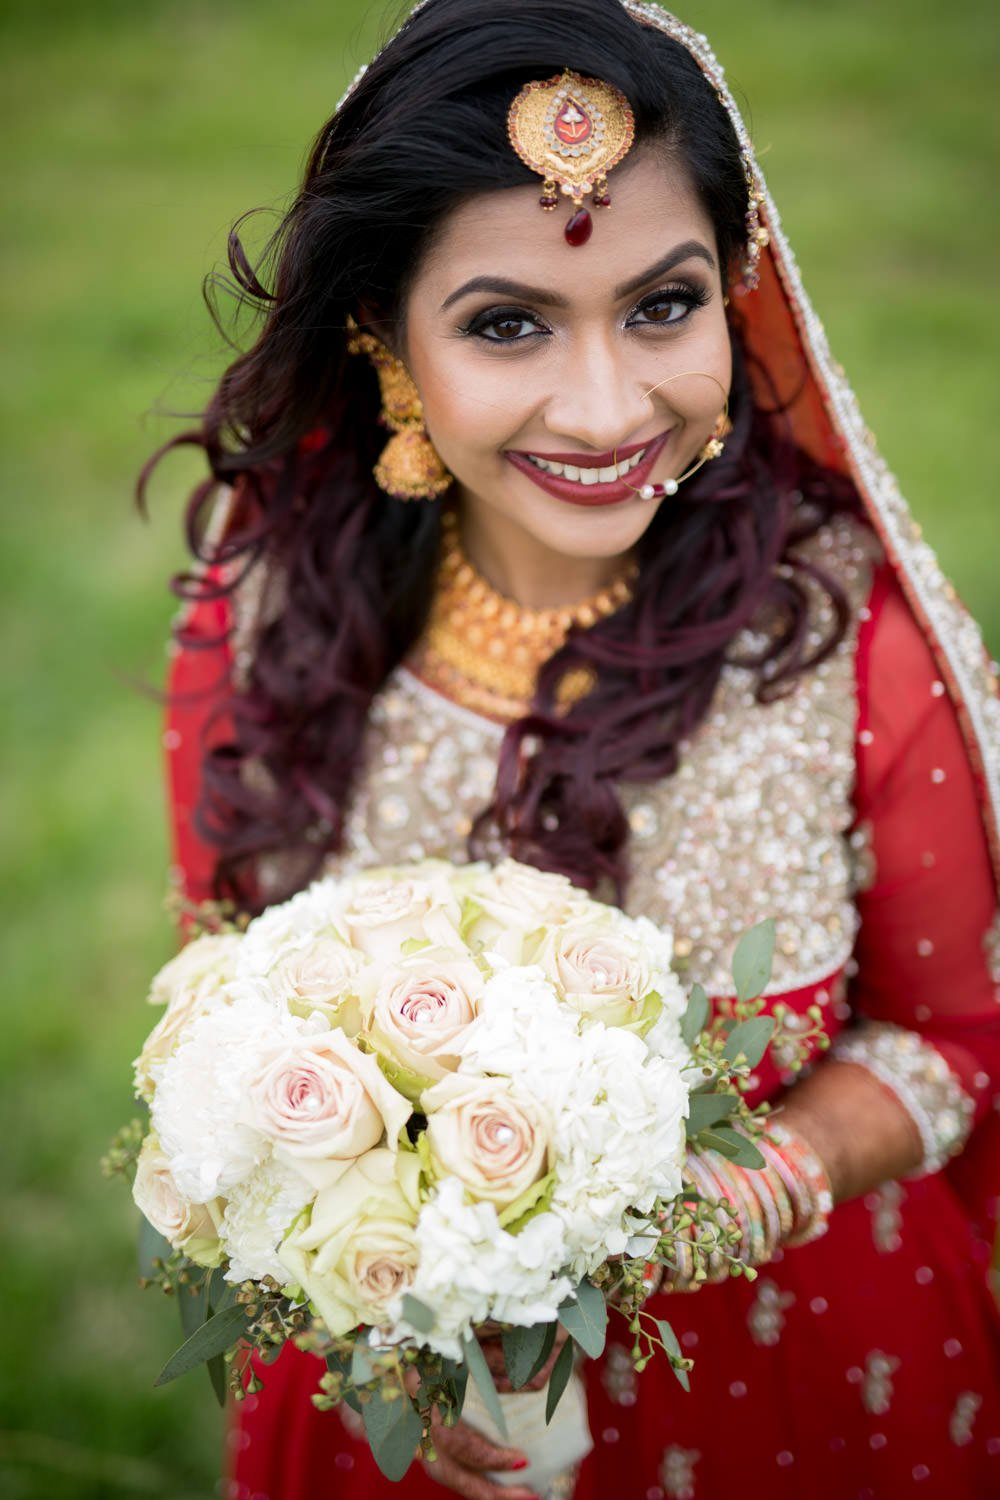 Bengali bride genuinely smiling during her bridal portraits on her wedding.